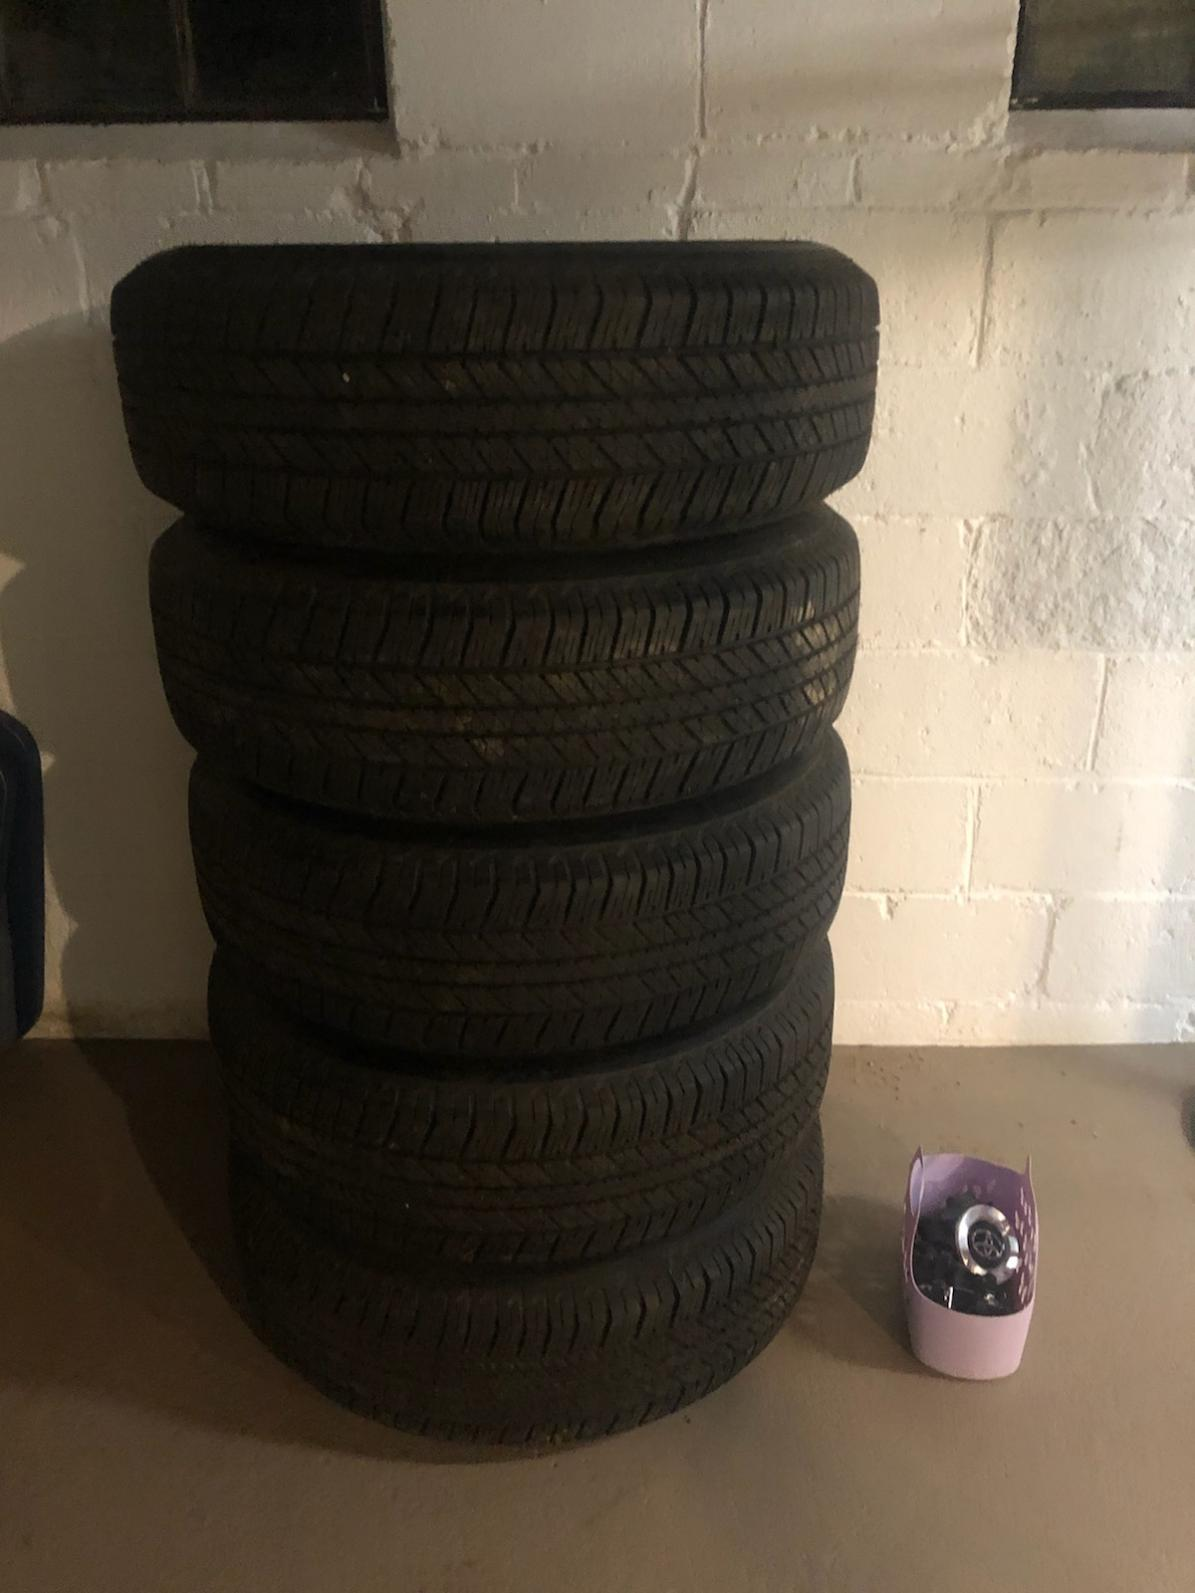 FS 2019 TRD ORP WHEELS AND TIRES 0 Medina, Ohio  SOLD-tires-1-jpg